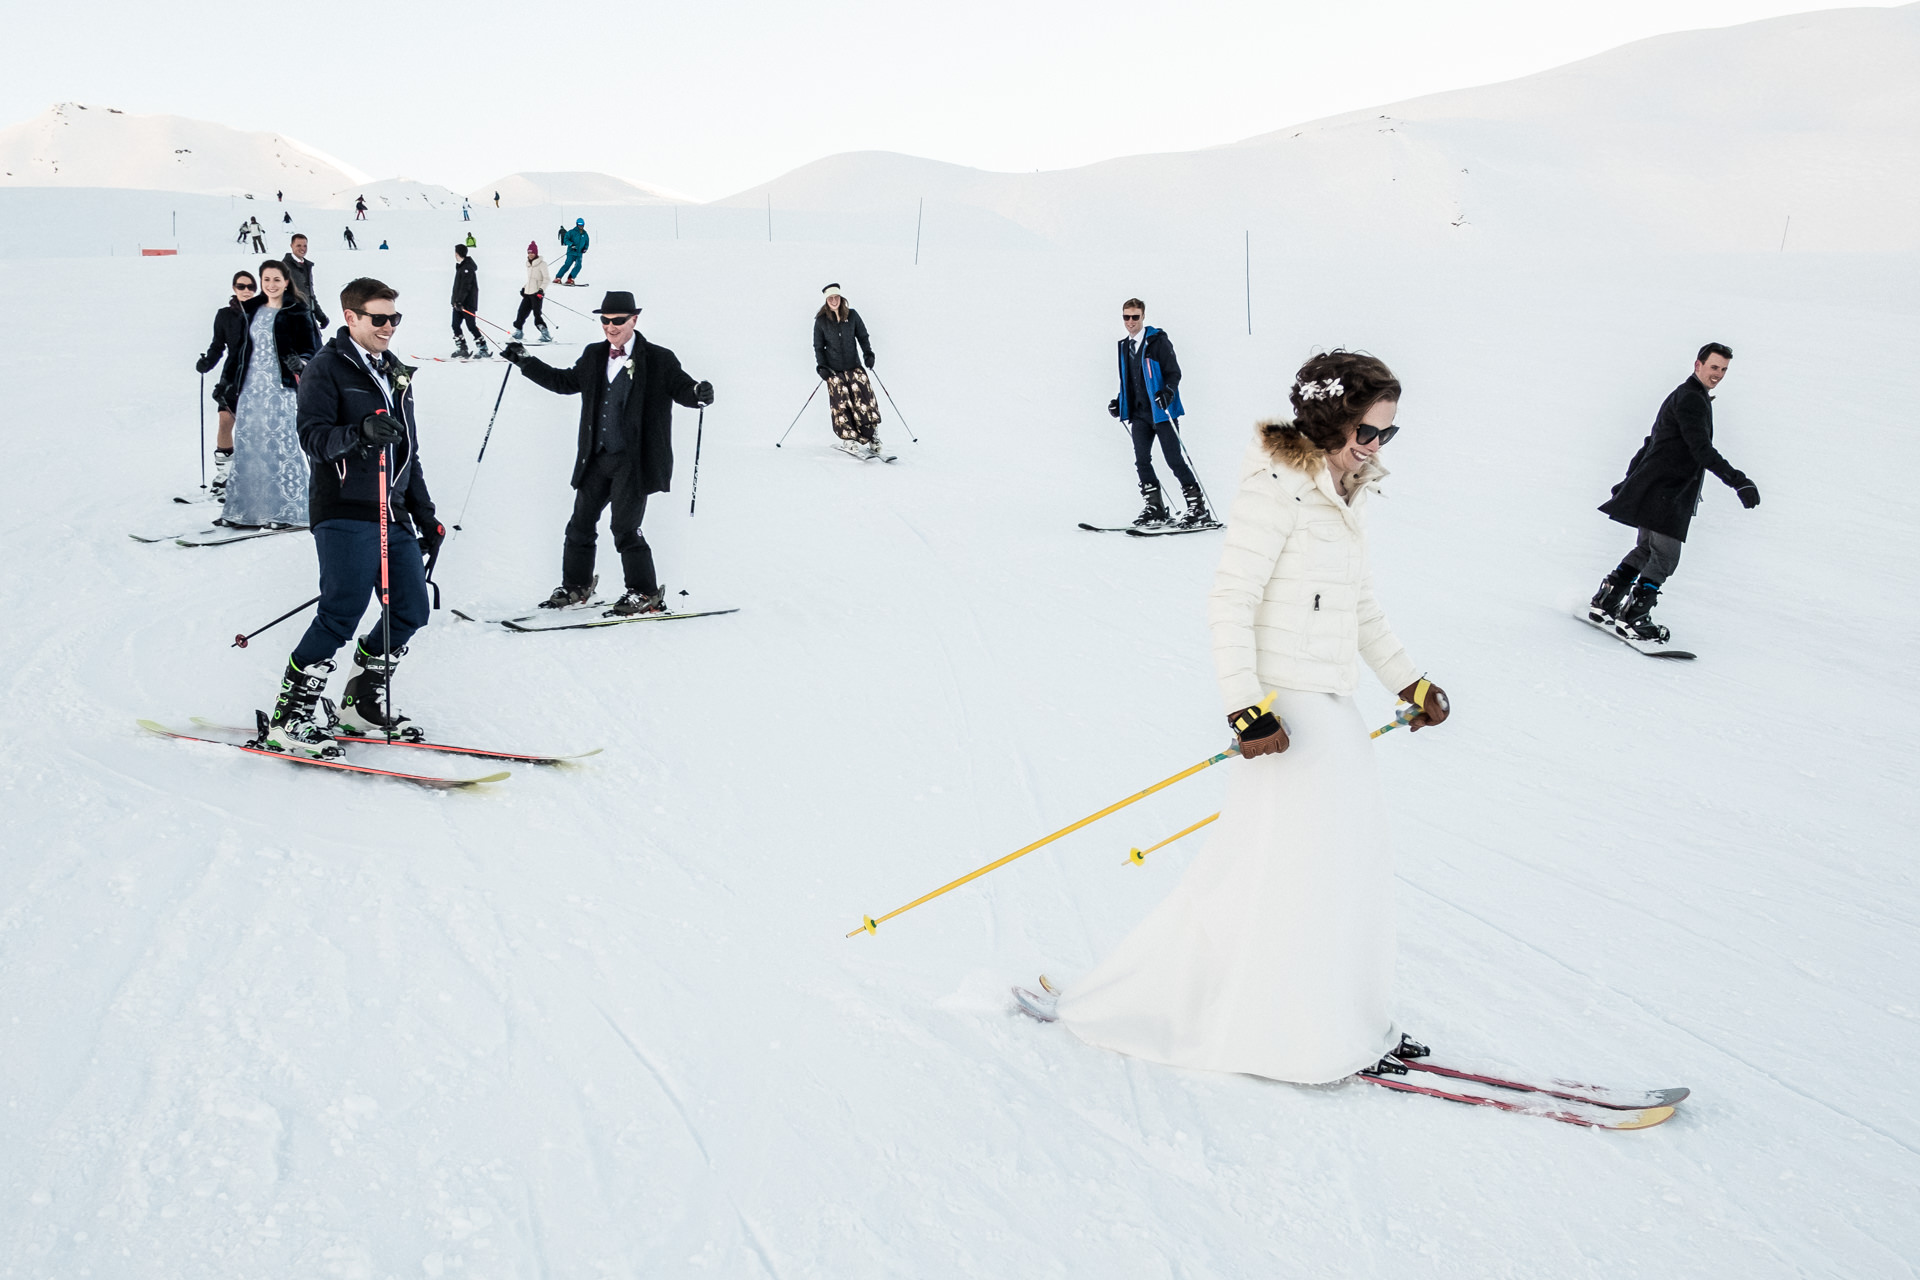 Les Arcs, France Ski Elopement Bride Image | The bride and groom finish off their celebration by skiing down the slopes